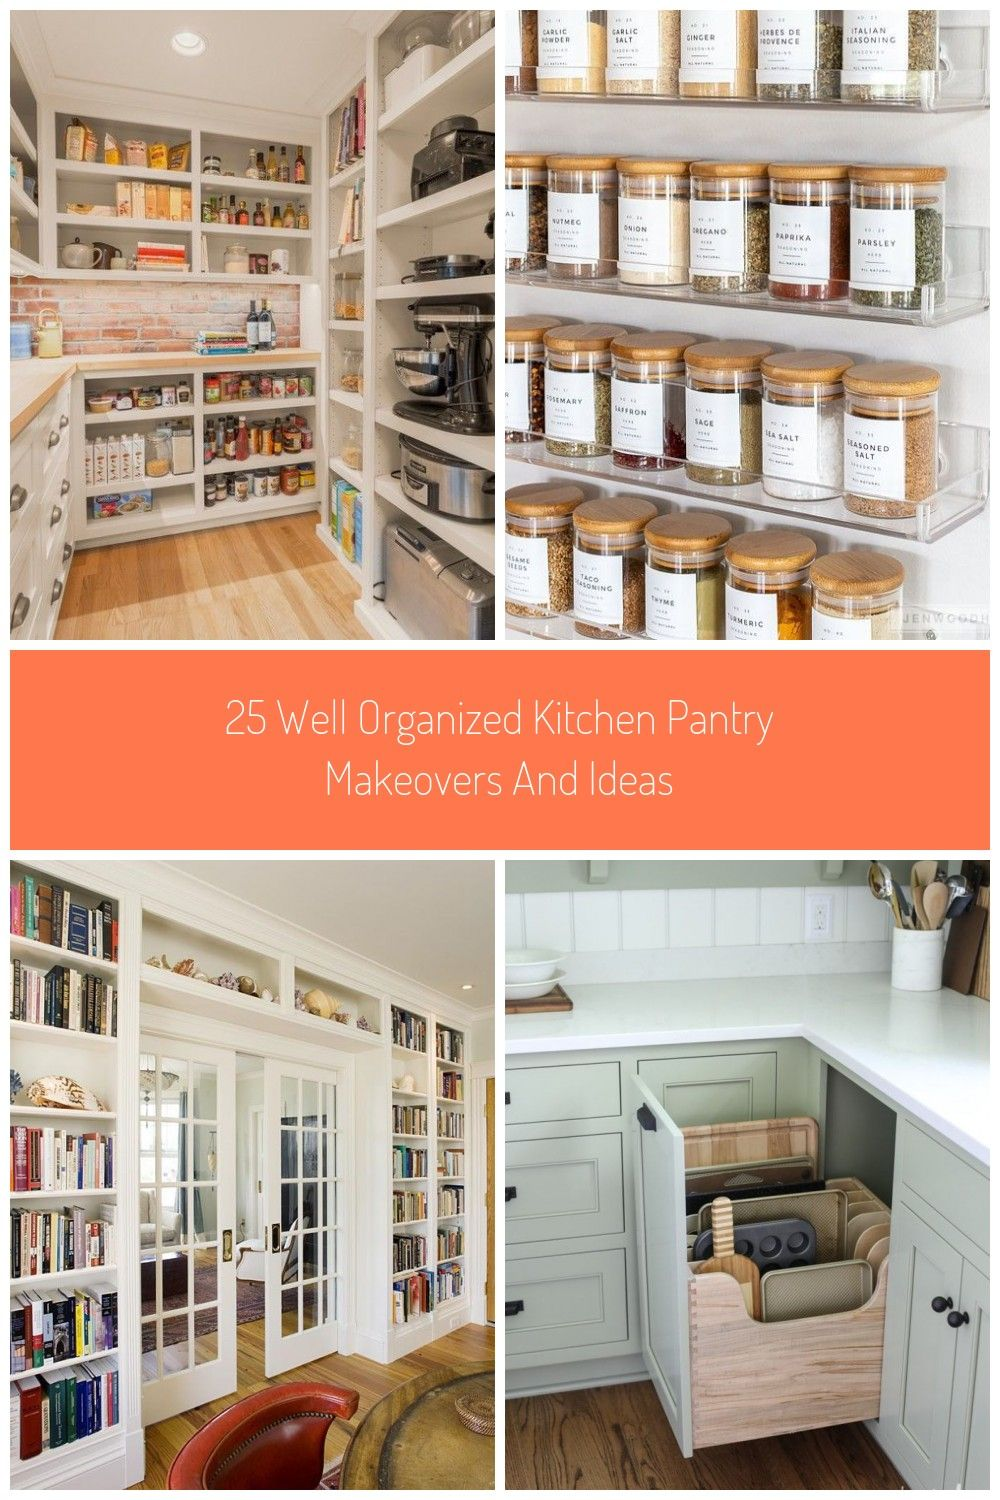 Give Your Kitchen Pantry A Makeover With These Organization Ideas And Beautiful Designs That Are Sure To Insp In 2020 Organisierte Kuche Waschbeckenschrank Midischrank